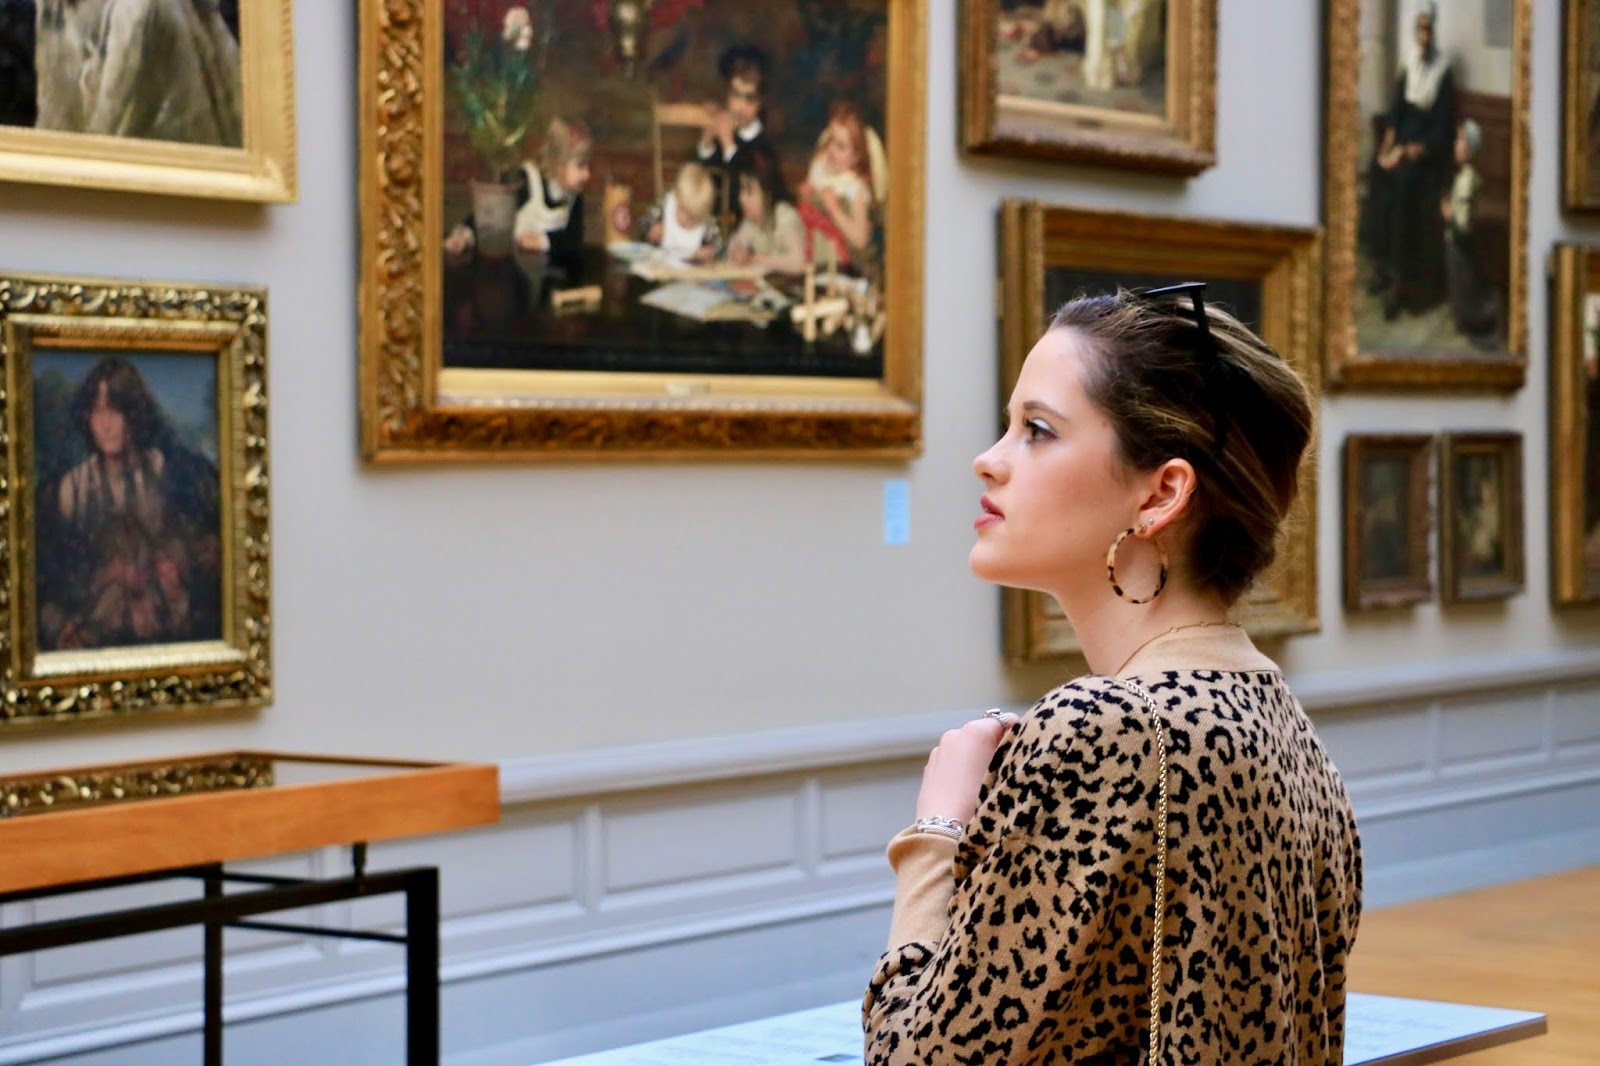 Fashion blogger Kathleen Harper at the MSK art museum in Ghent, Belgium